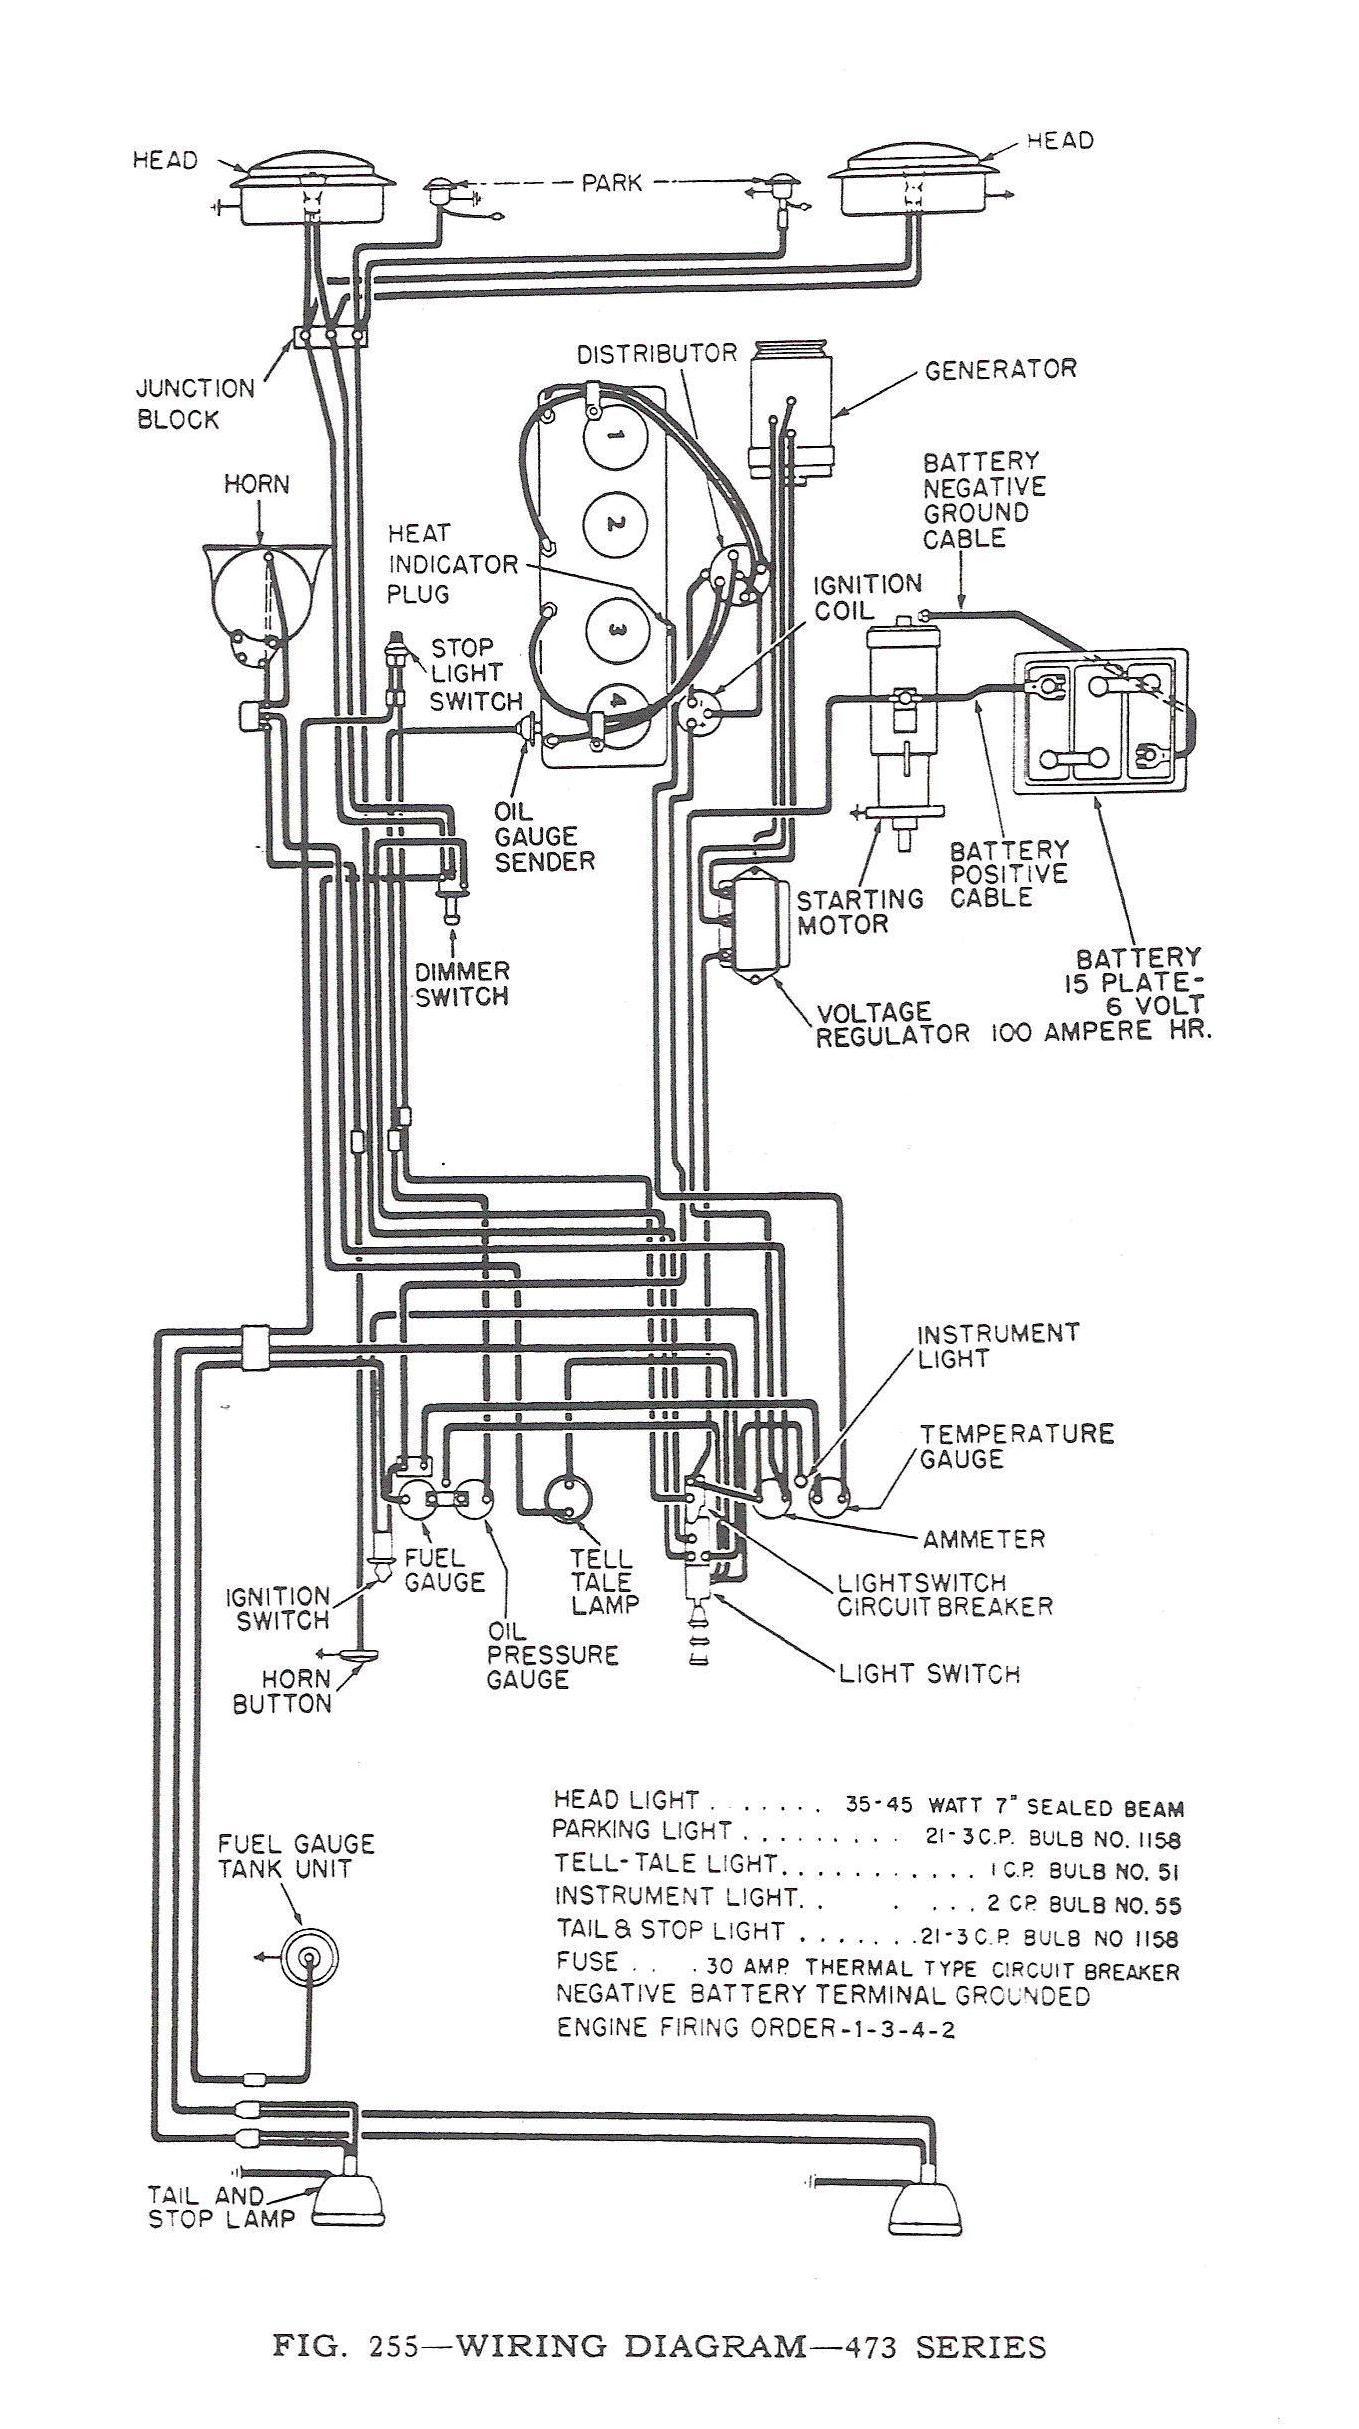 1952 Jeep Series 473 Wiring Diagrams Google Search Sathya Tj Wrangler Diagram